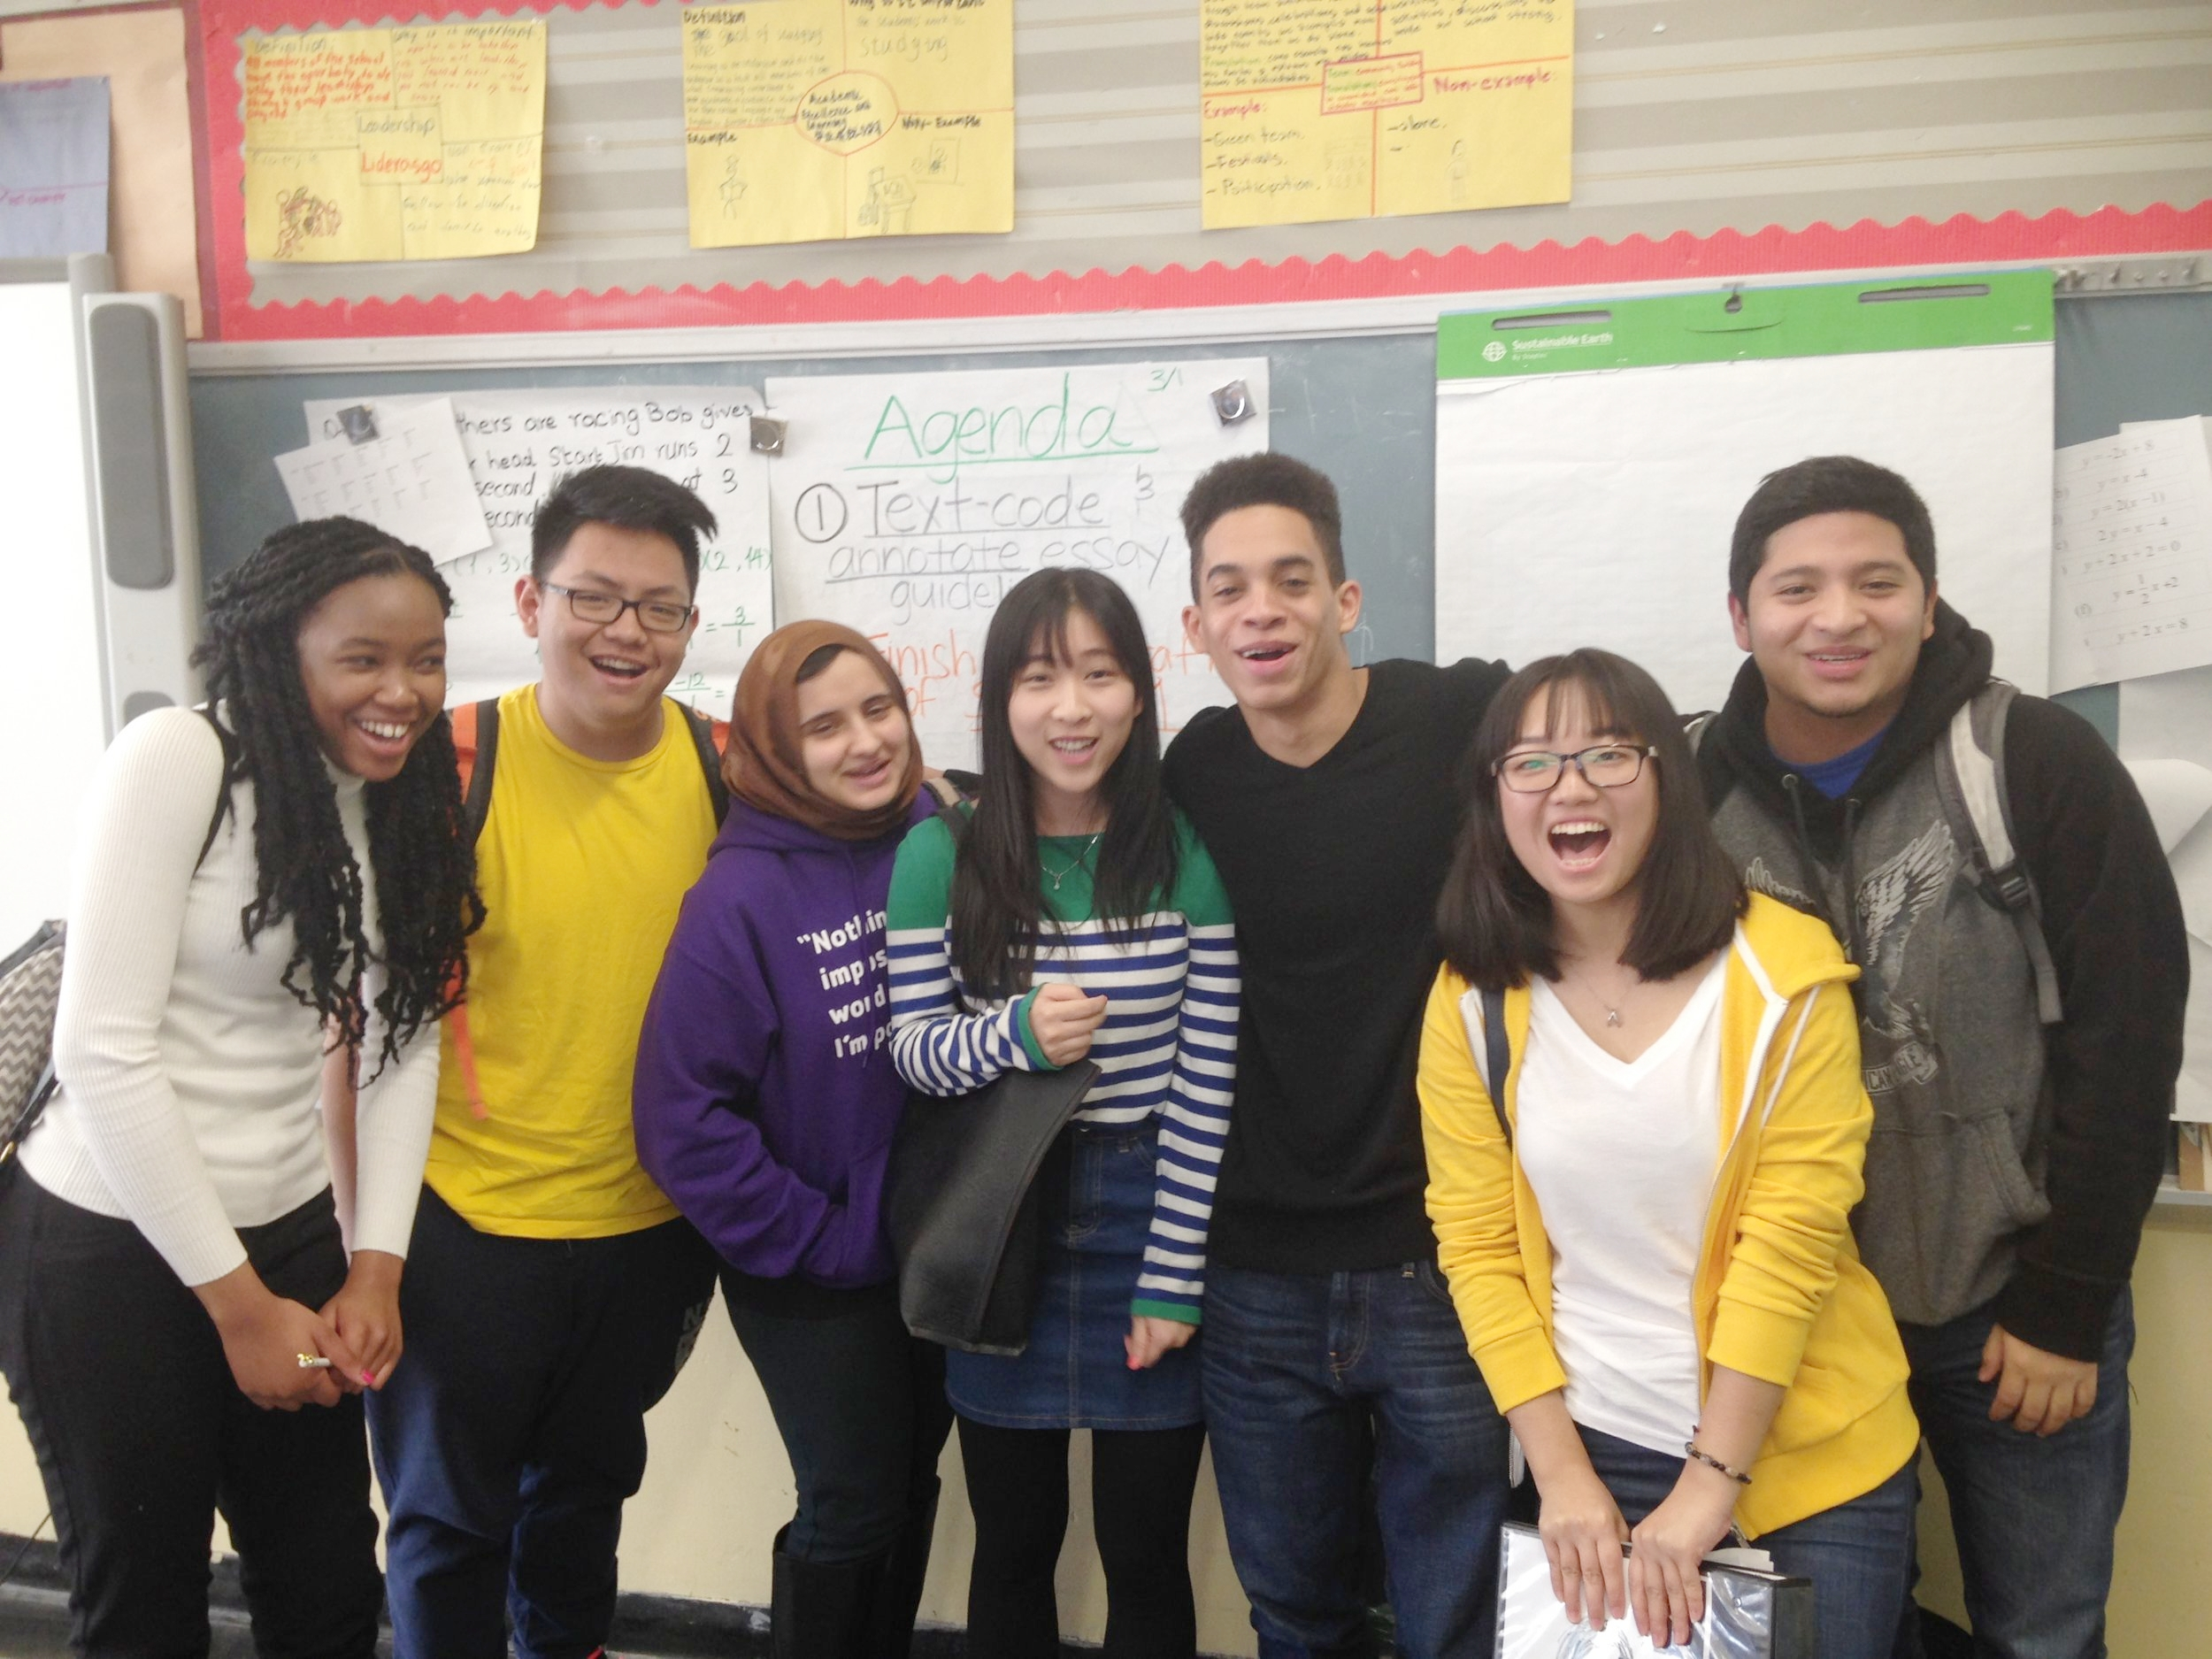 Students at Flushing International High School after presenting on a panel about mastery-based grading at their school